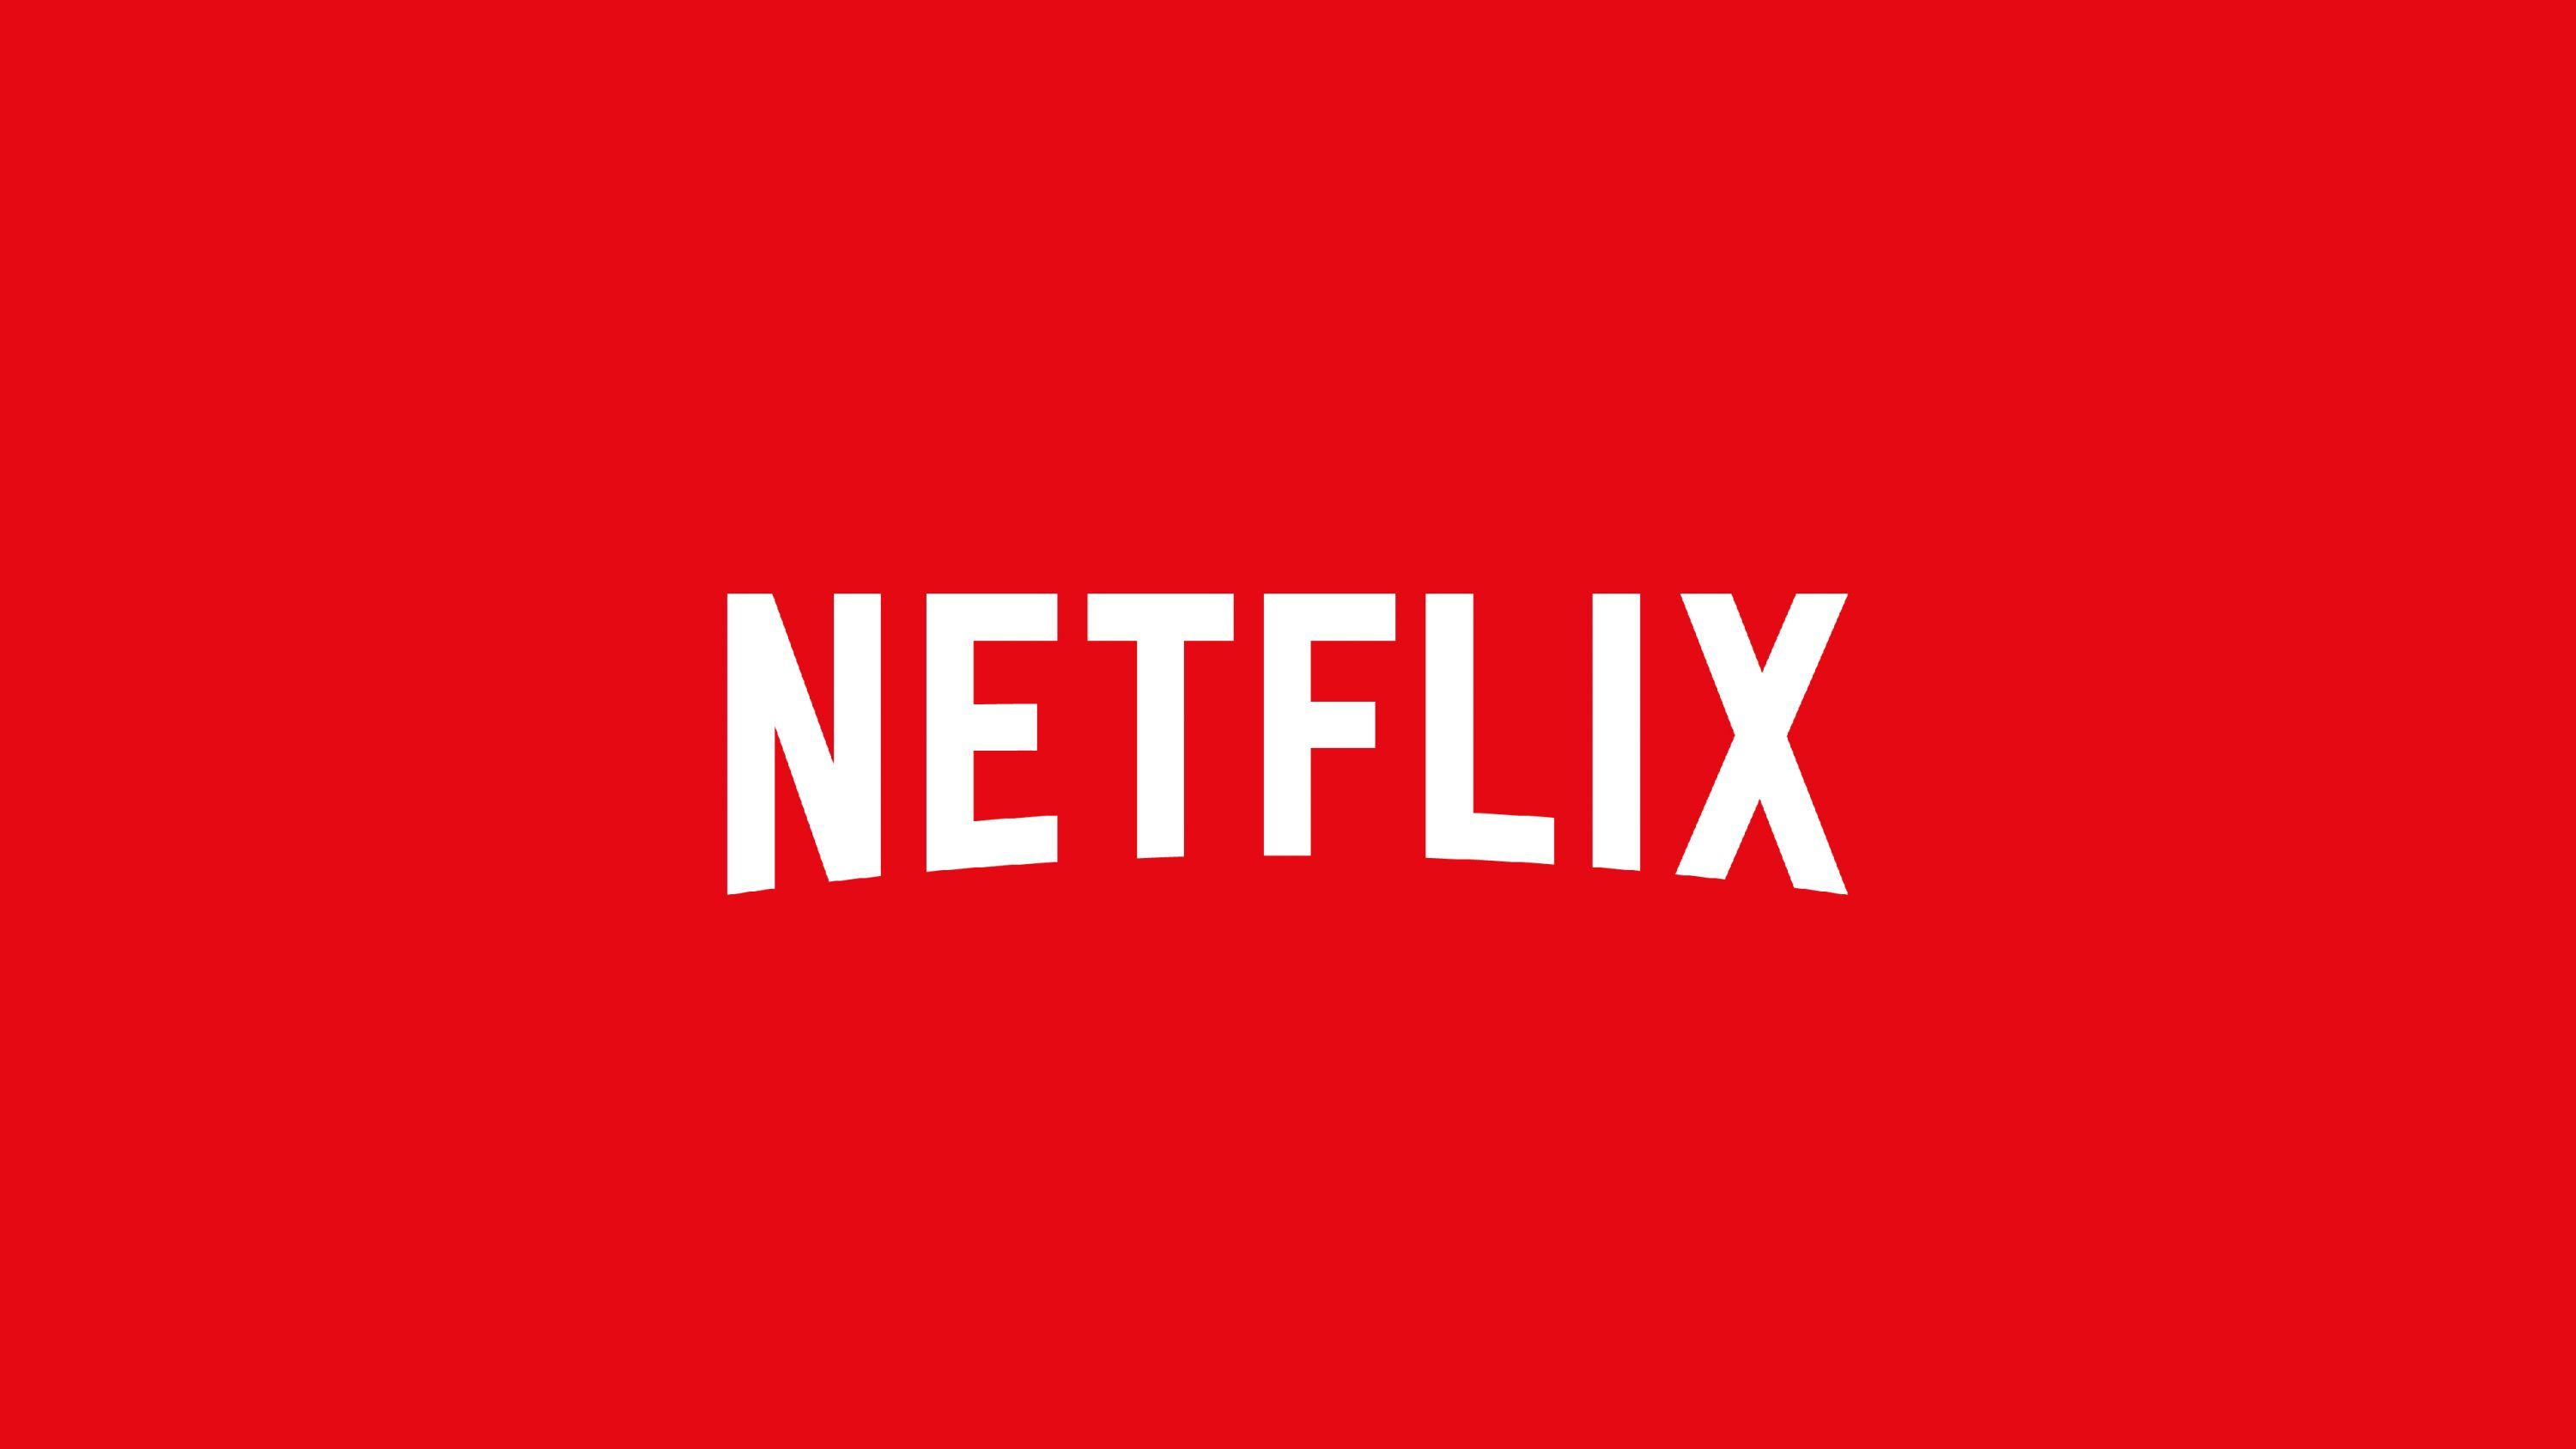 Our Work With Netflix Global Streaming Giants Moving